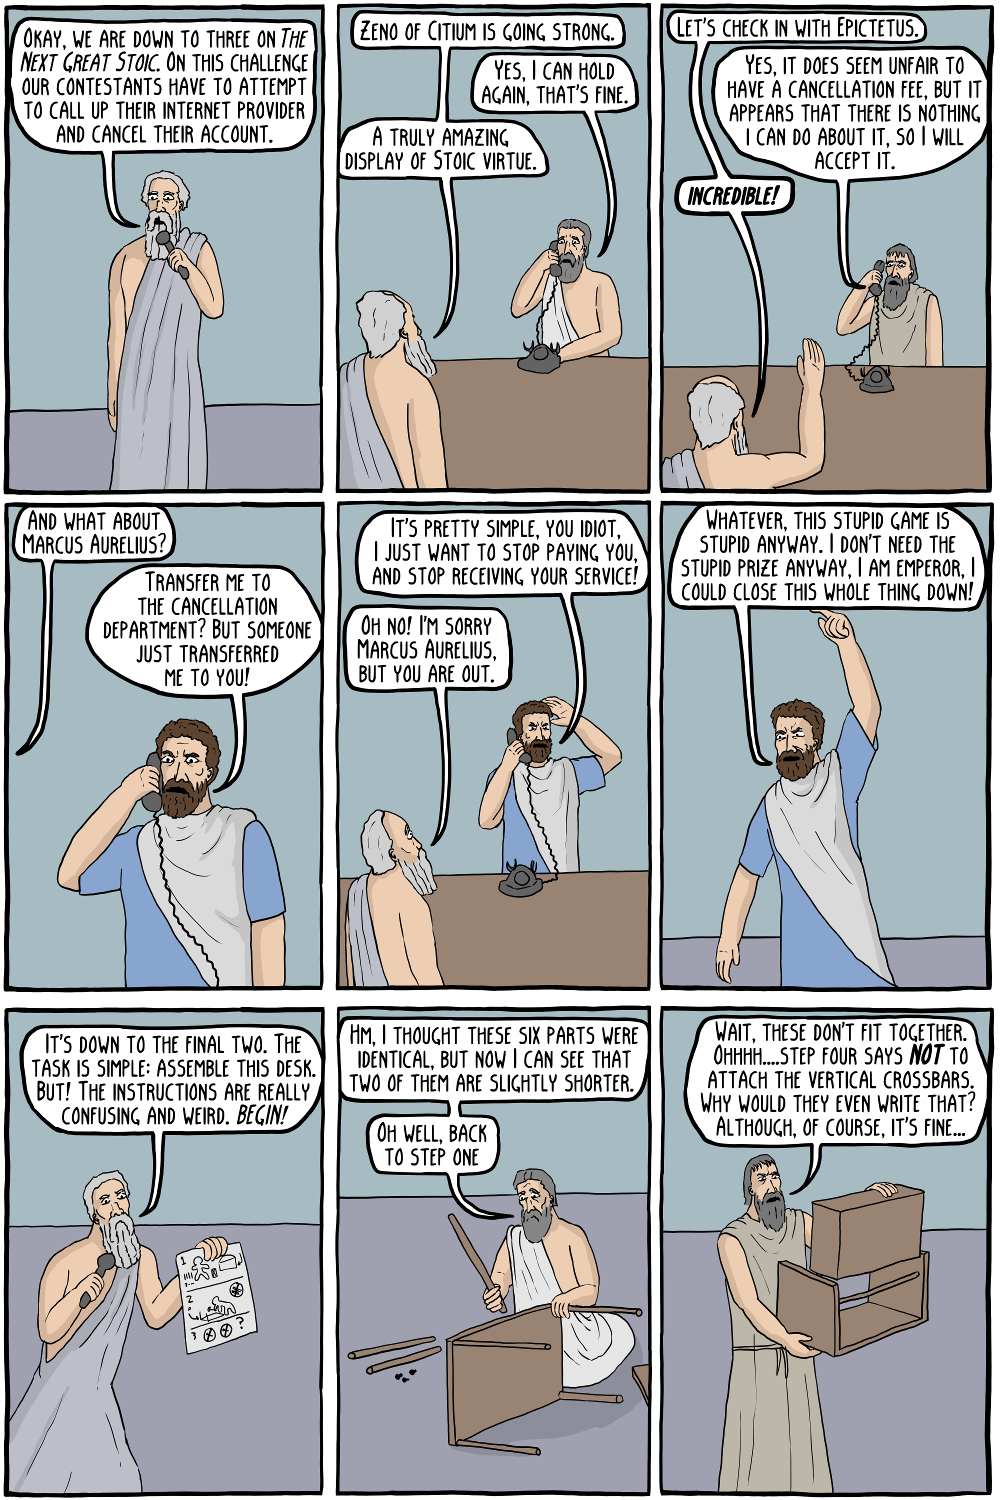 Existential comics : The Next Great Stoic Competition